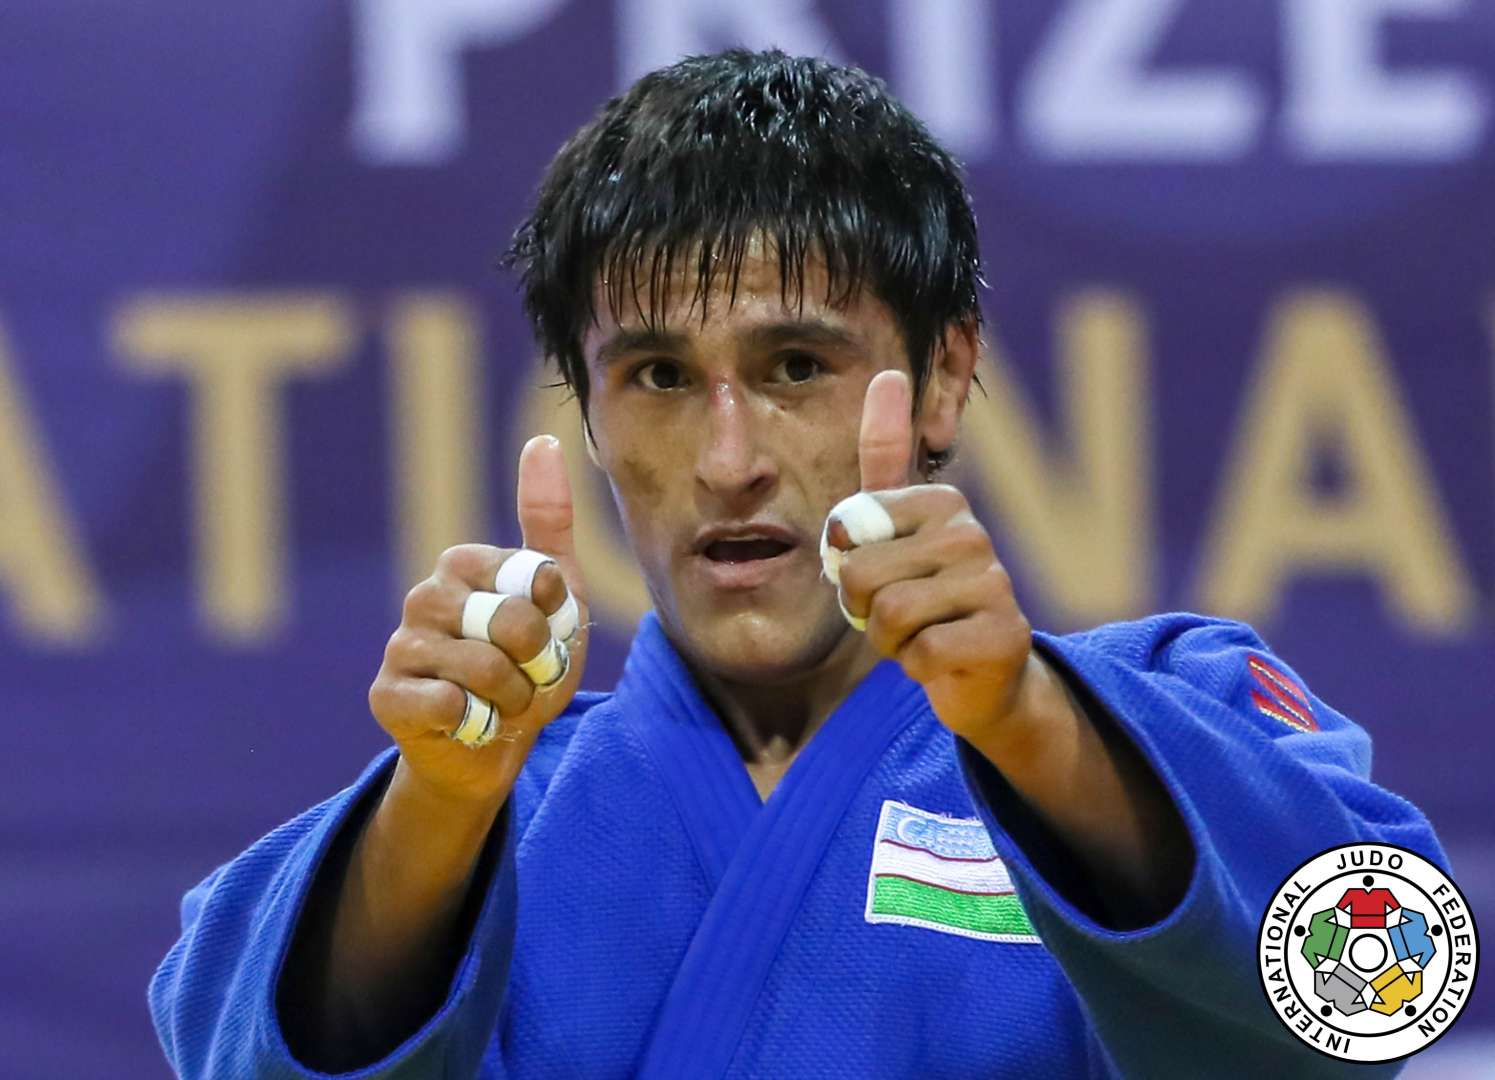 10 Best Judo Players of All Time